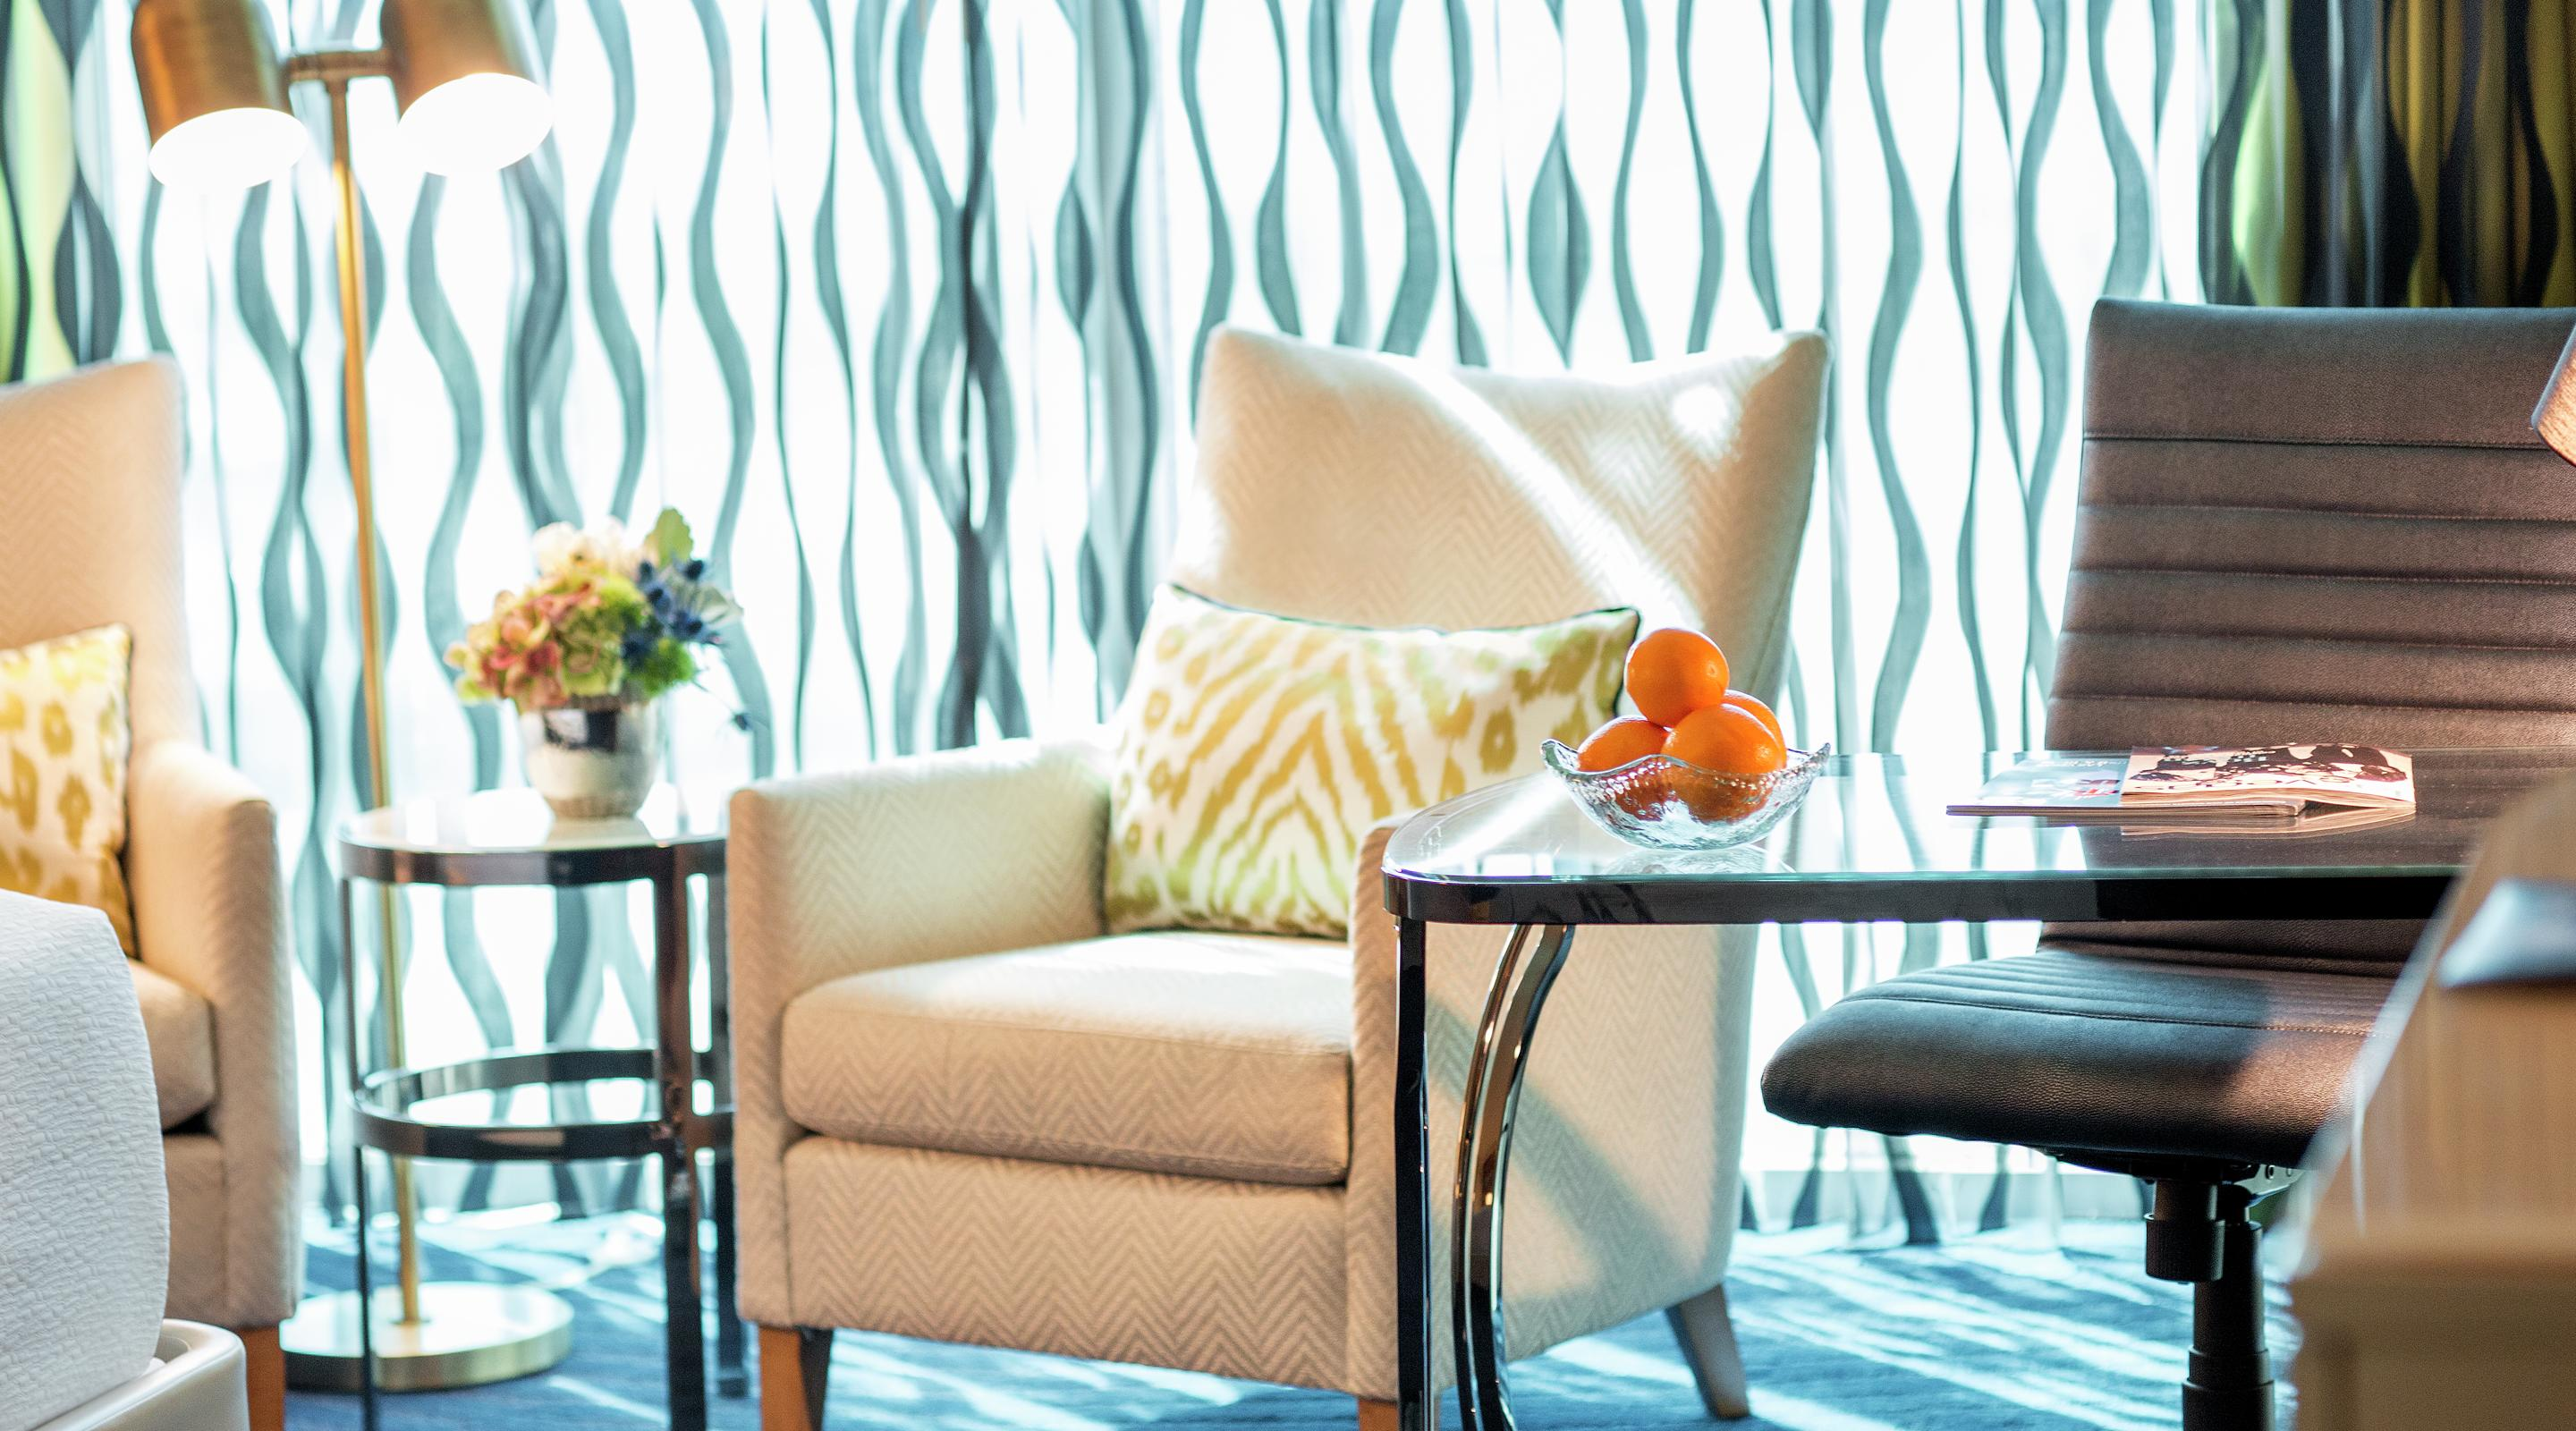 Boldly designed furnishings and plush textiles offer an experience that you'll love to call home during your stay.